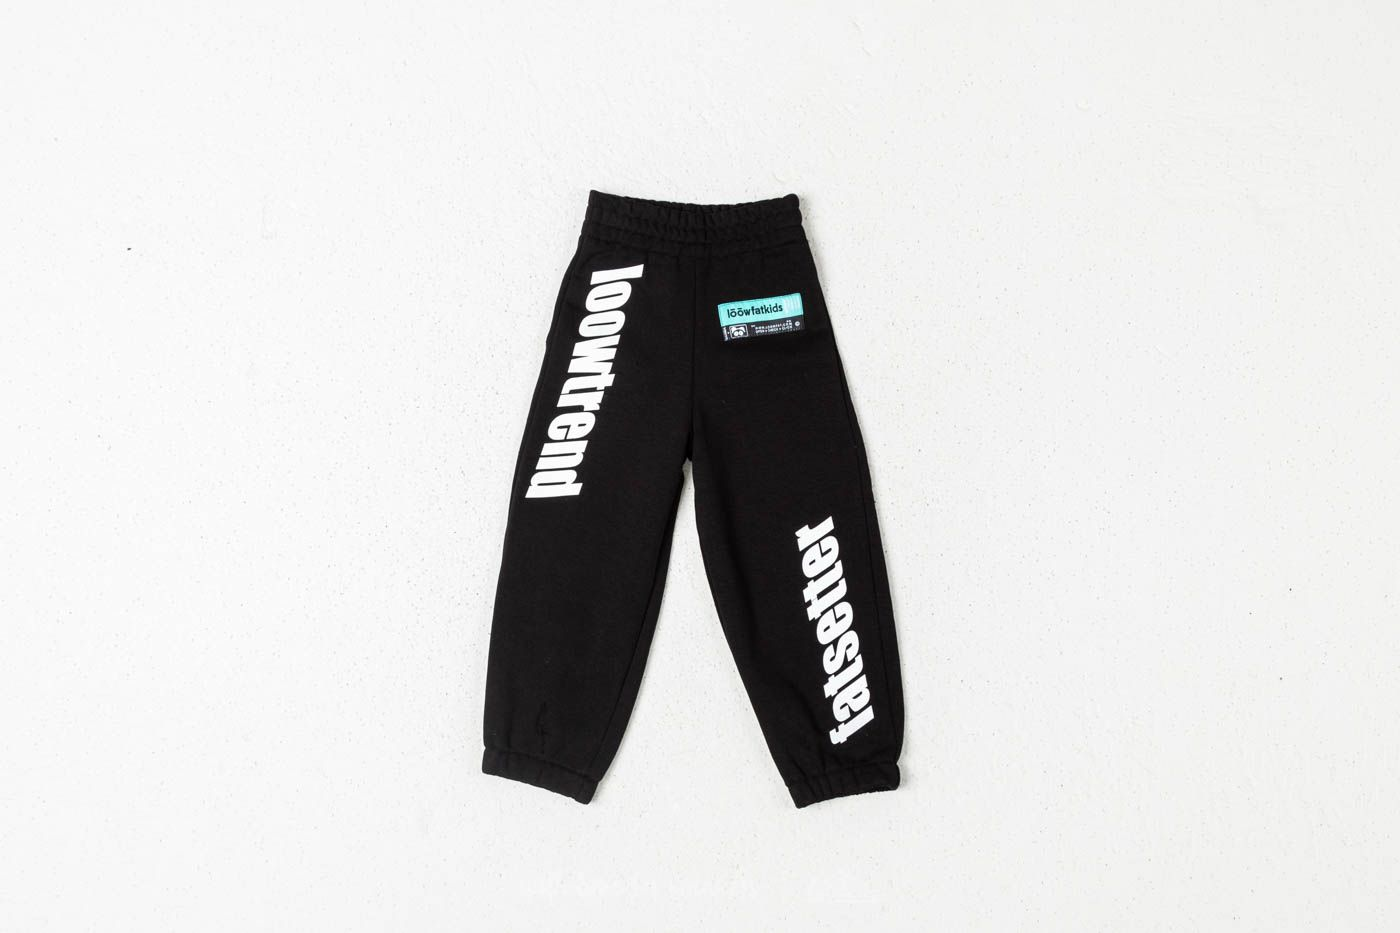 Children's Clothing LoowFAT KIDS Loowtrend Joggers Black